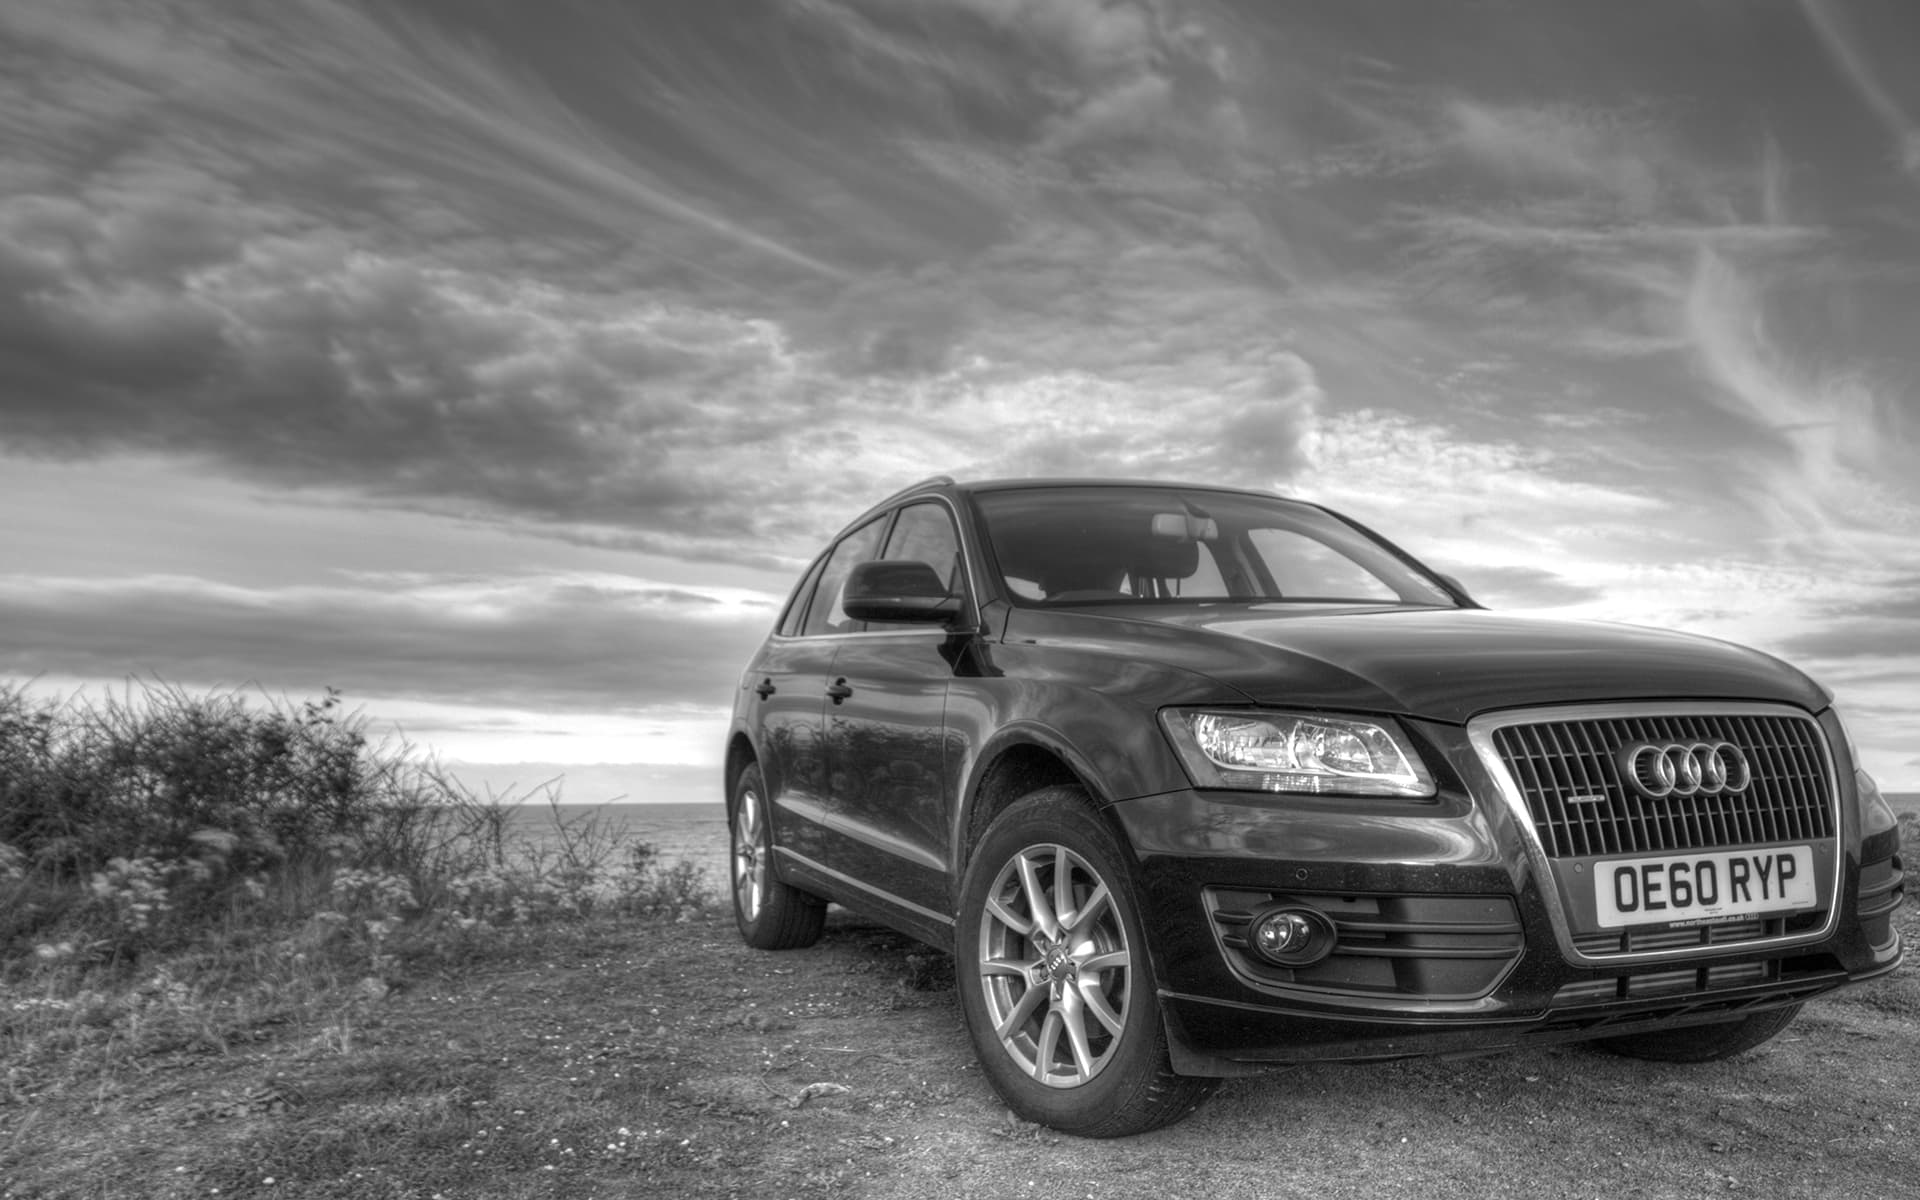 20 Audi Q5 Wallpapers High Quality Resolution Download